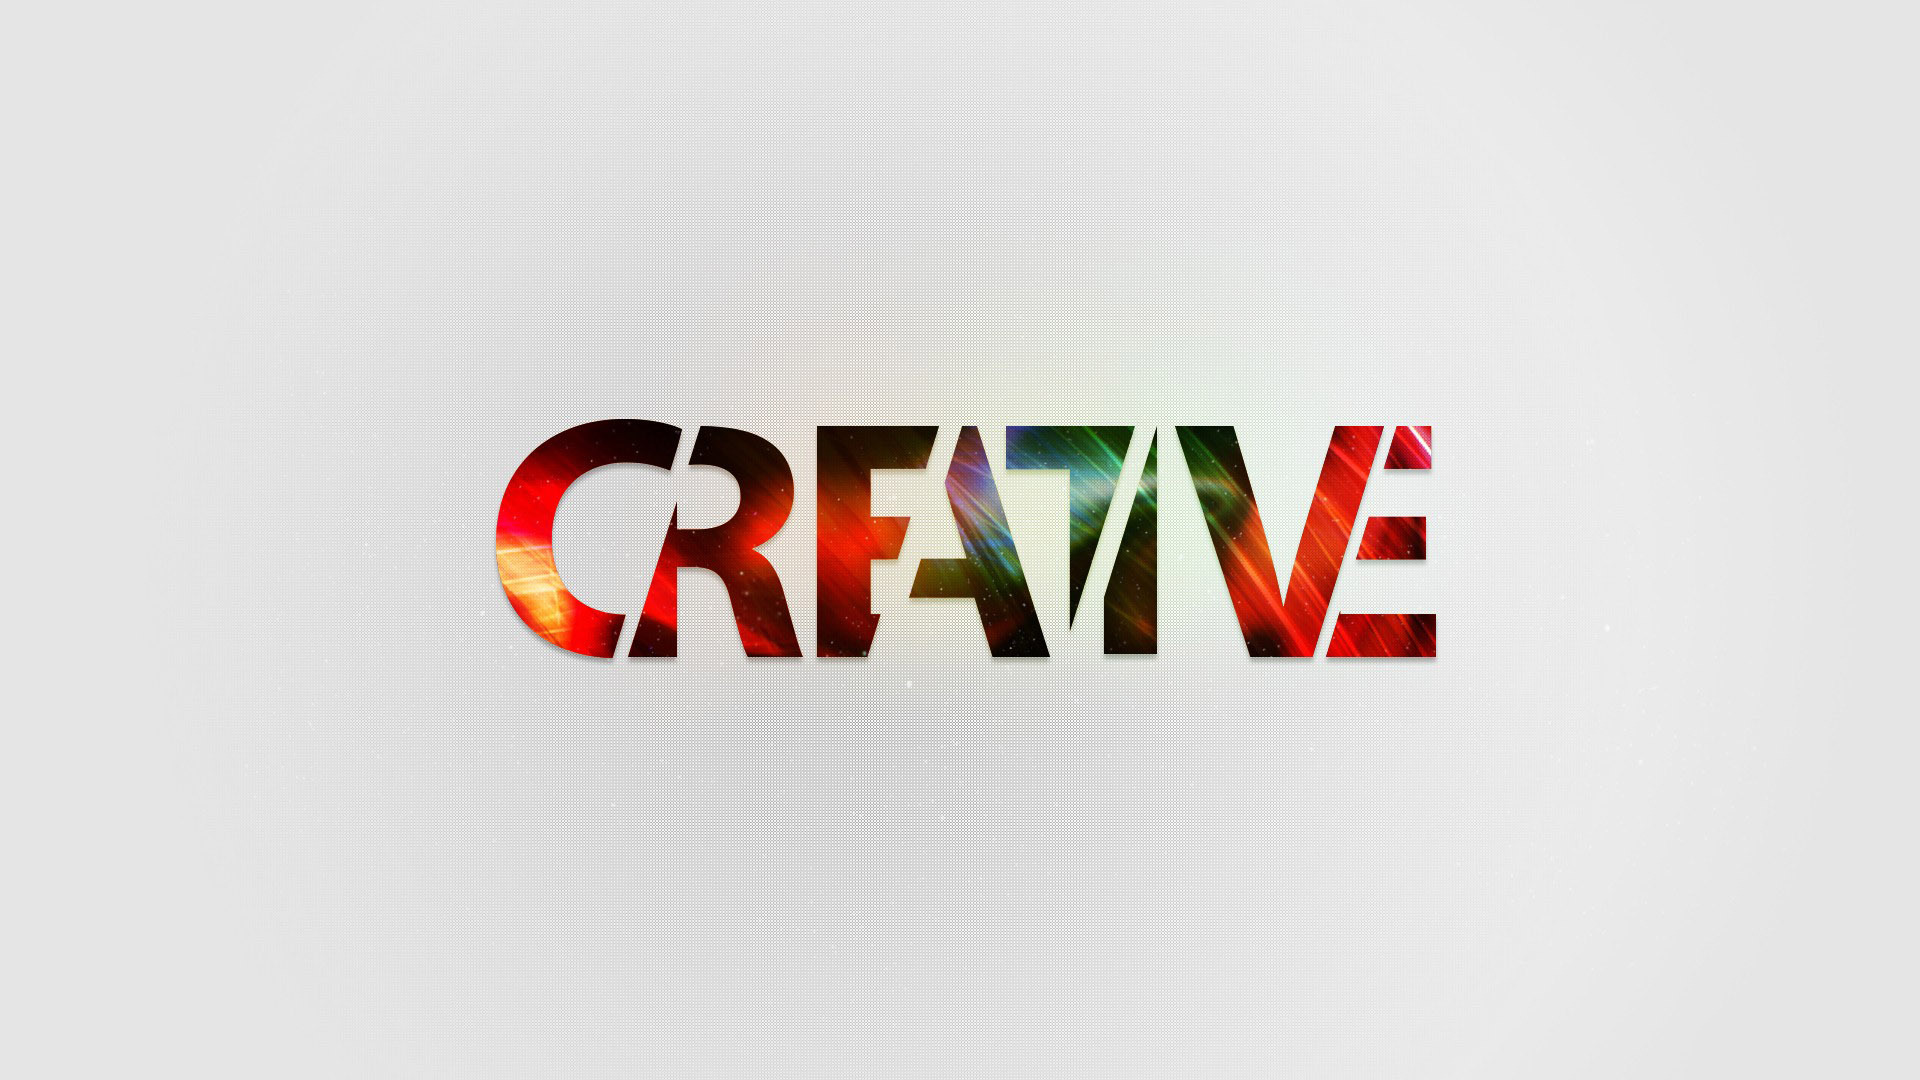 Sweet Creativity Wallpaper